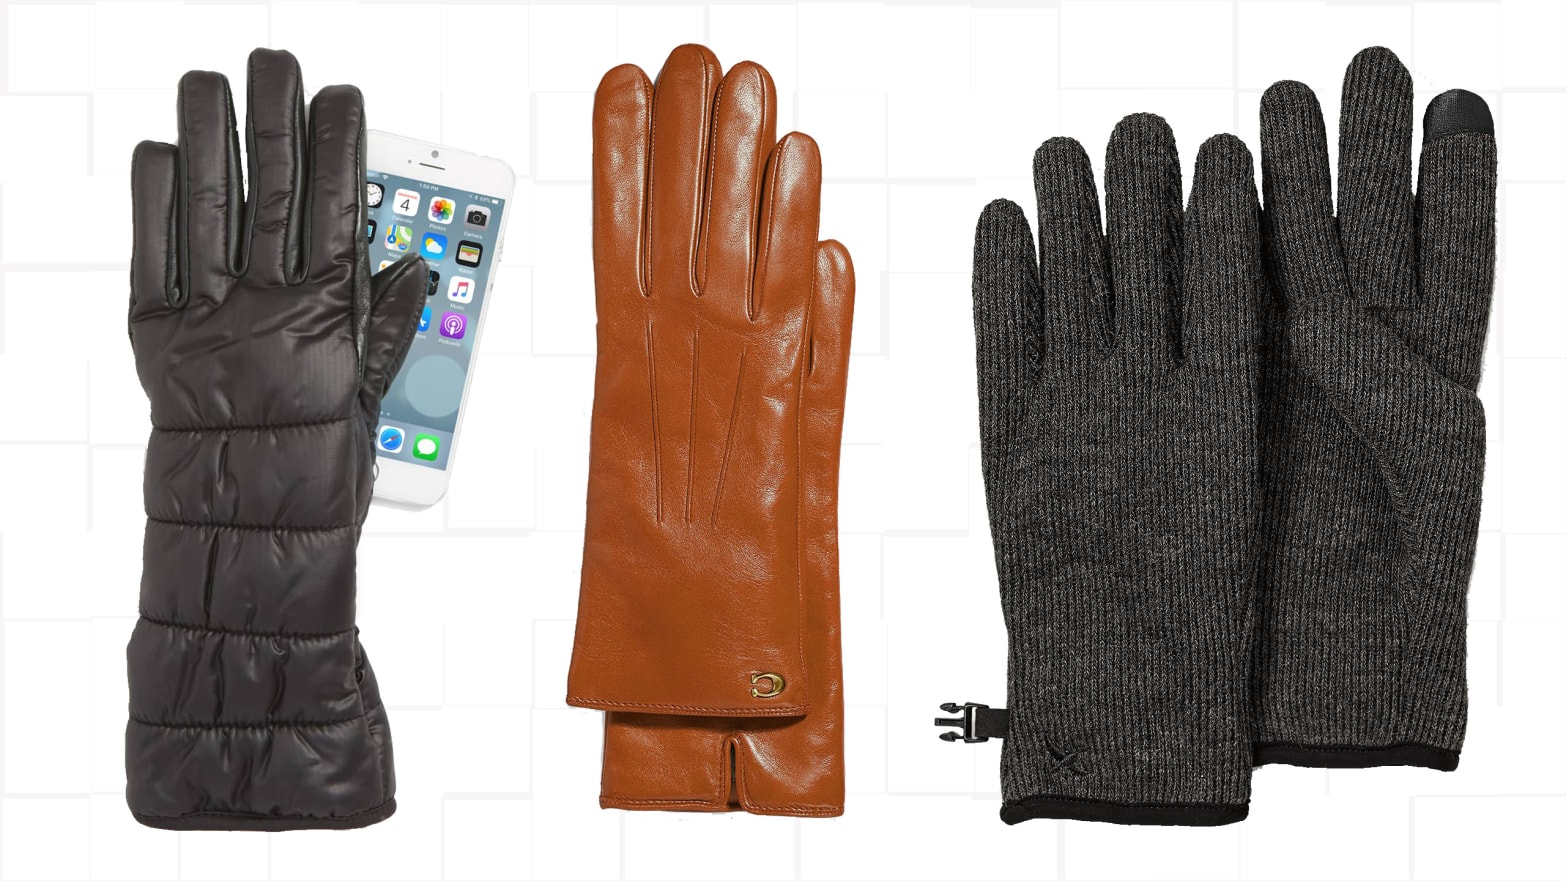 d316fdef449 Keep Your Fingers Warm While You Text With These Gloves